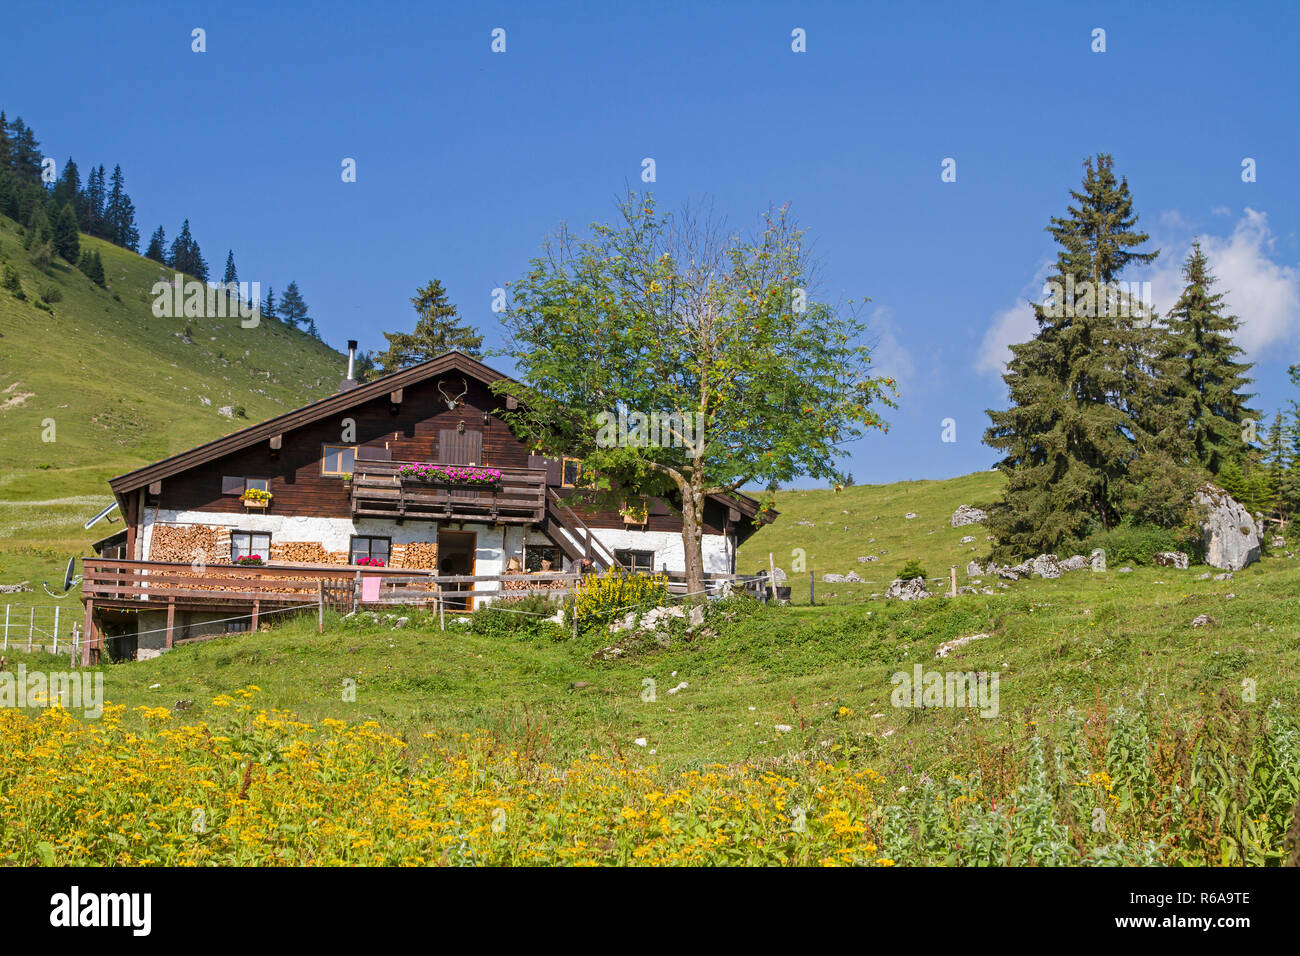 The Idyllic Grabenbergalm Are Located In The Tyrolean Part Of The Mangfall Mountains Near The Well-Known Ackernalm - Stock Image